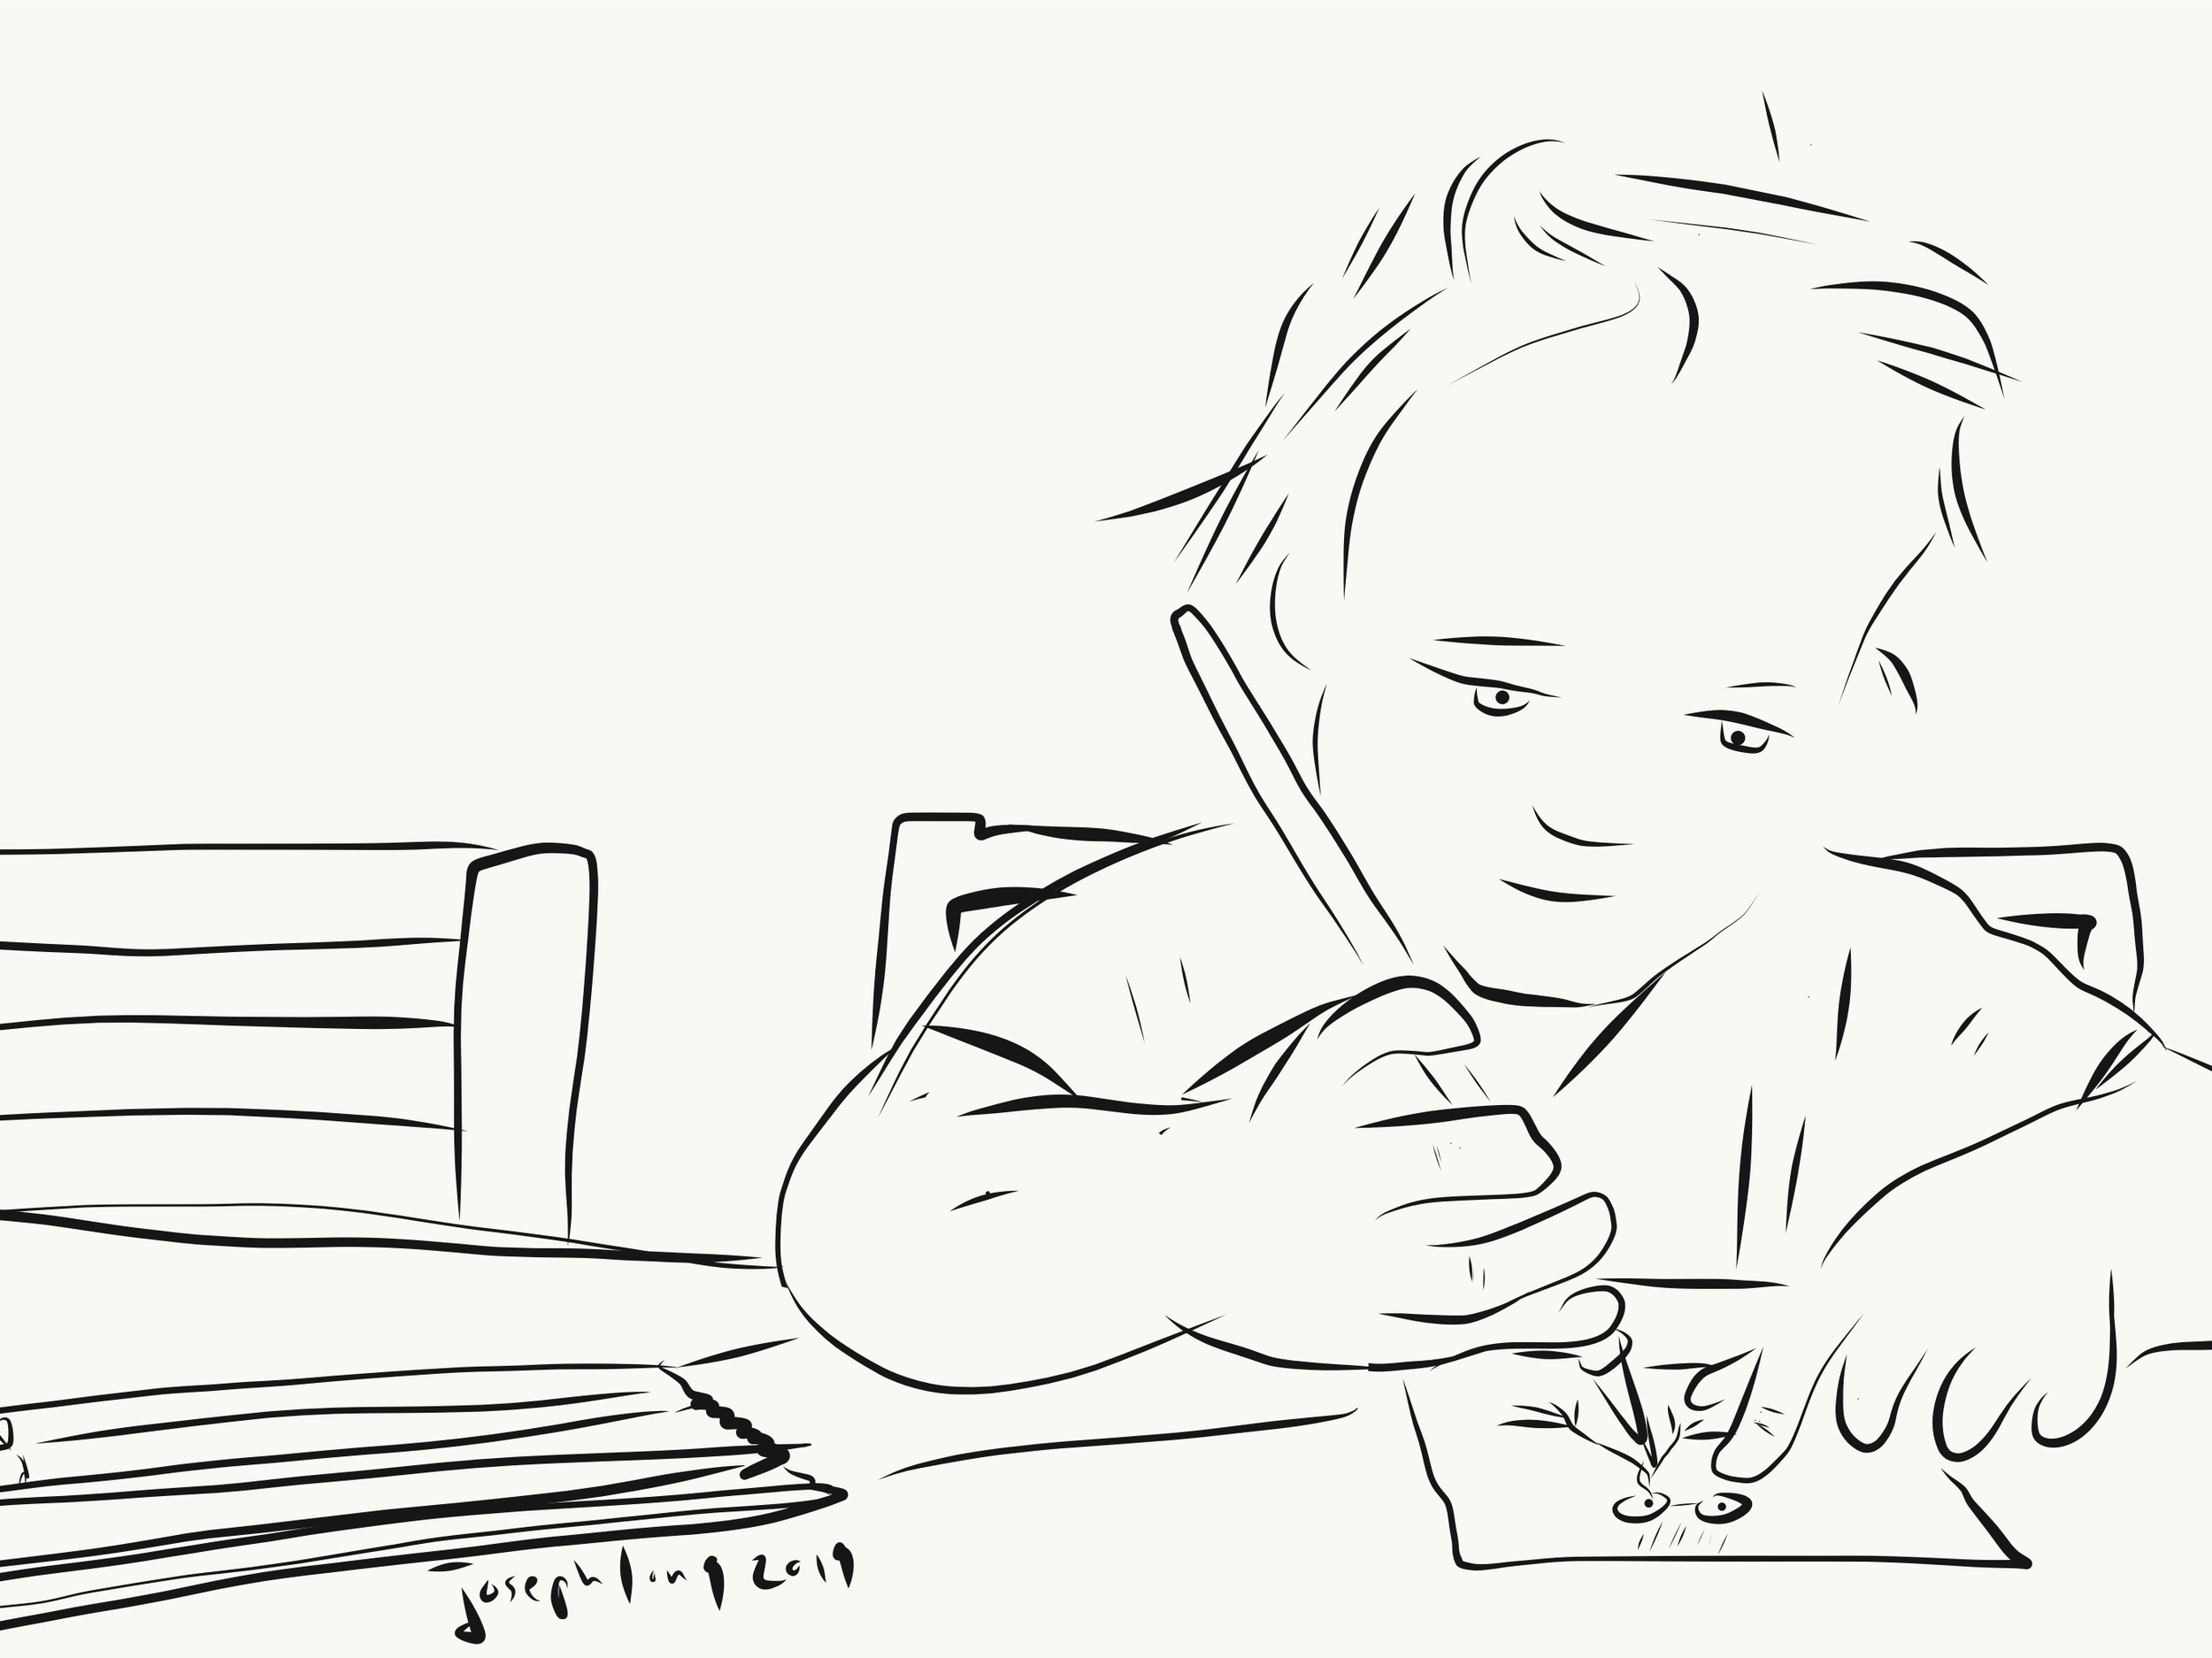 two-year-old-boy-drawing-at-coffee-table copy.png